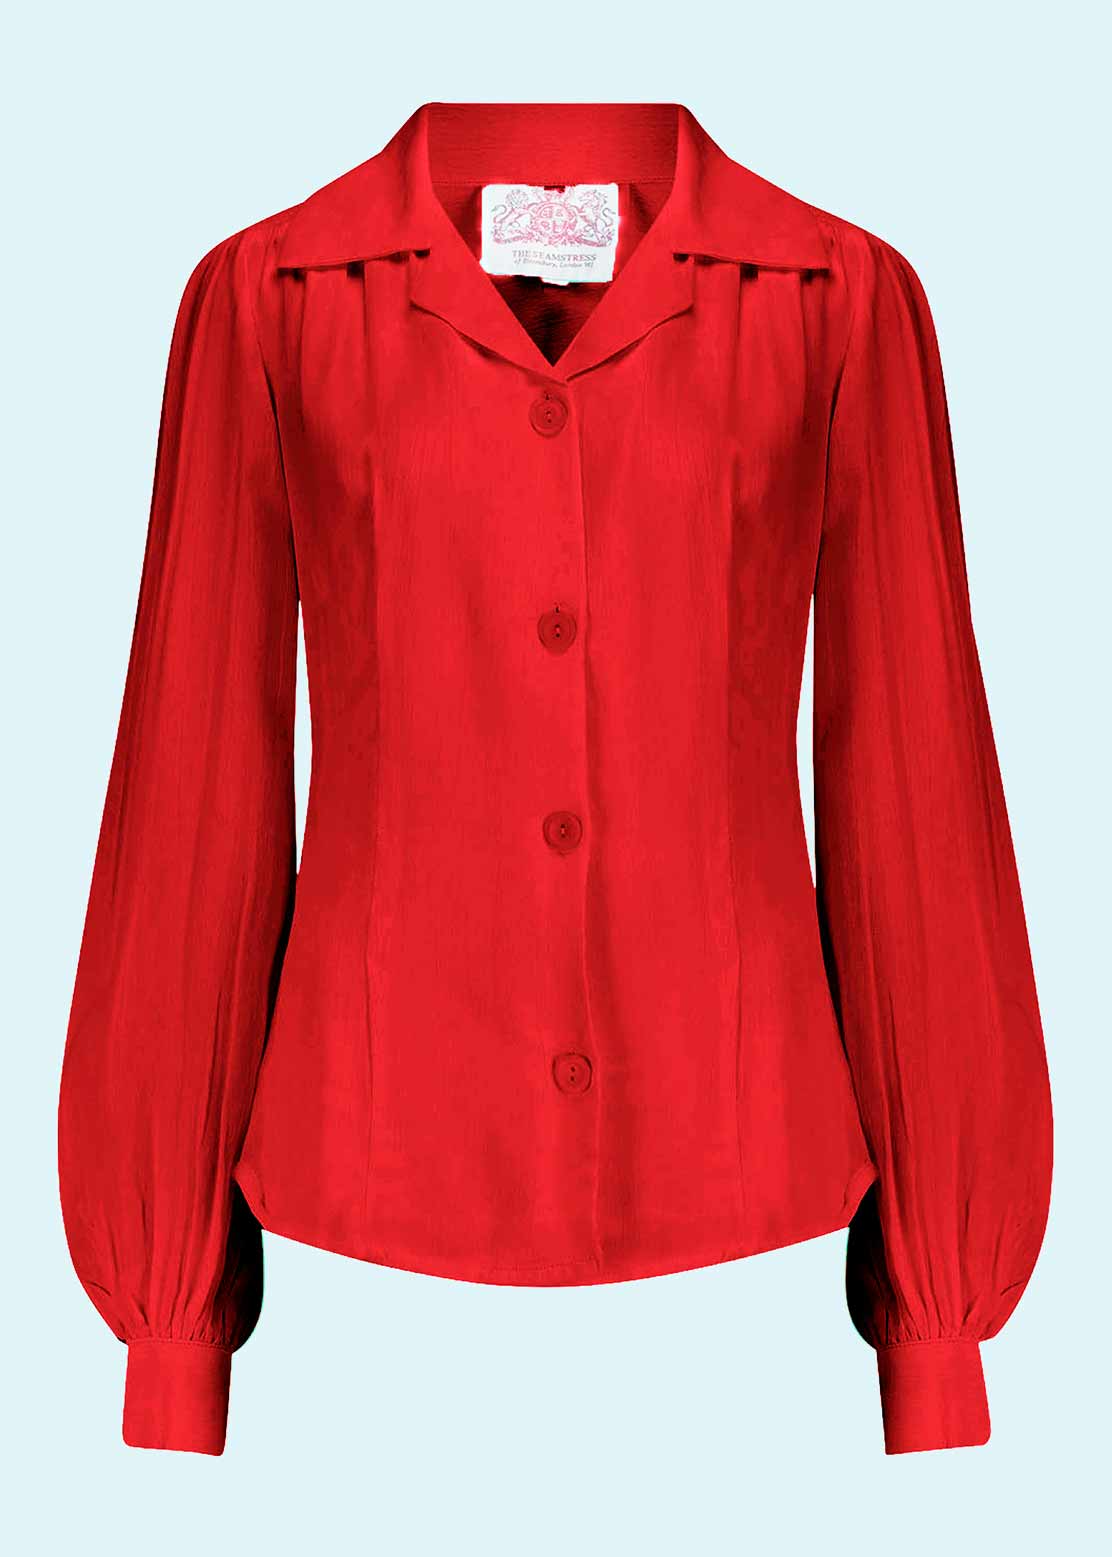 red shirt in vintage style